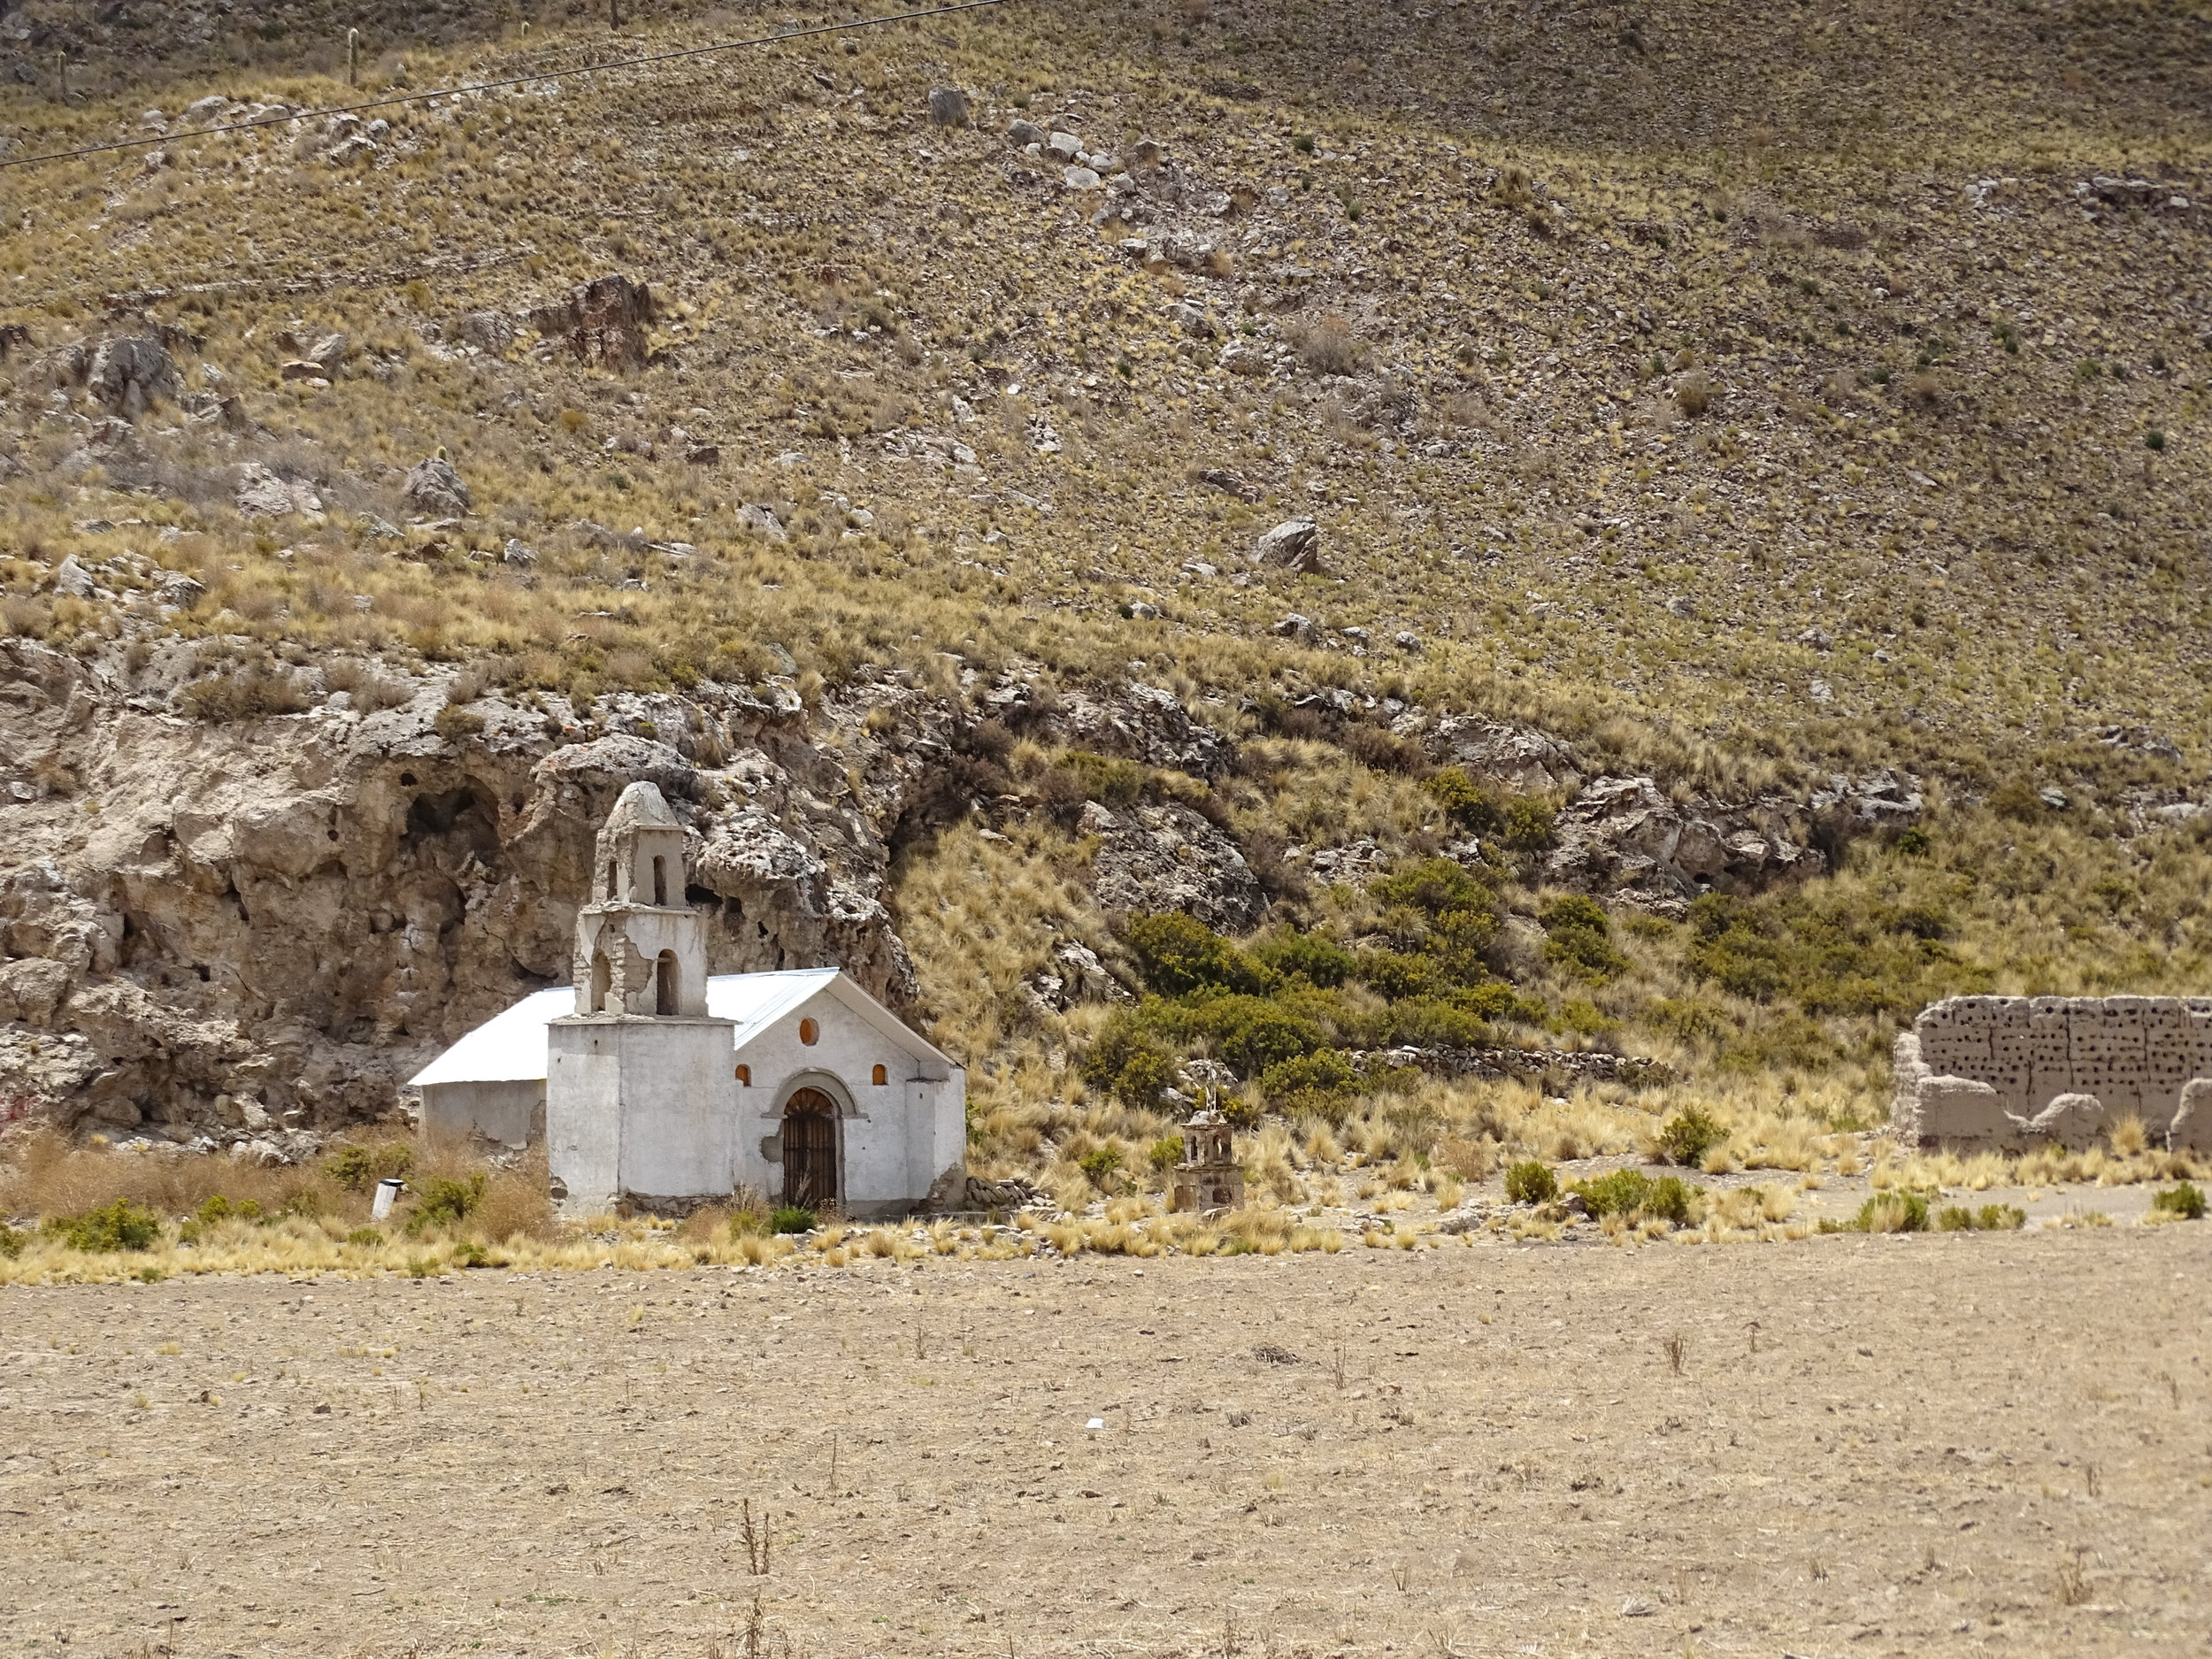 These images were all along the way through Bolivia.  History is all around you.